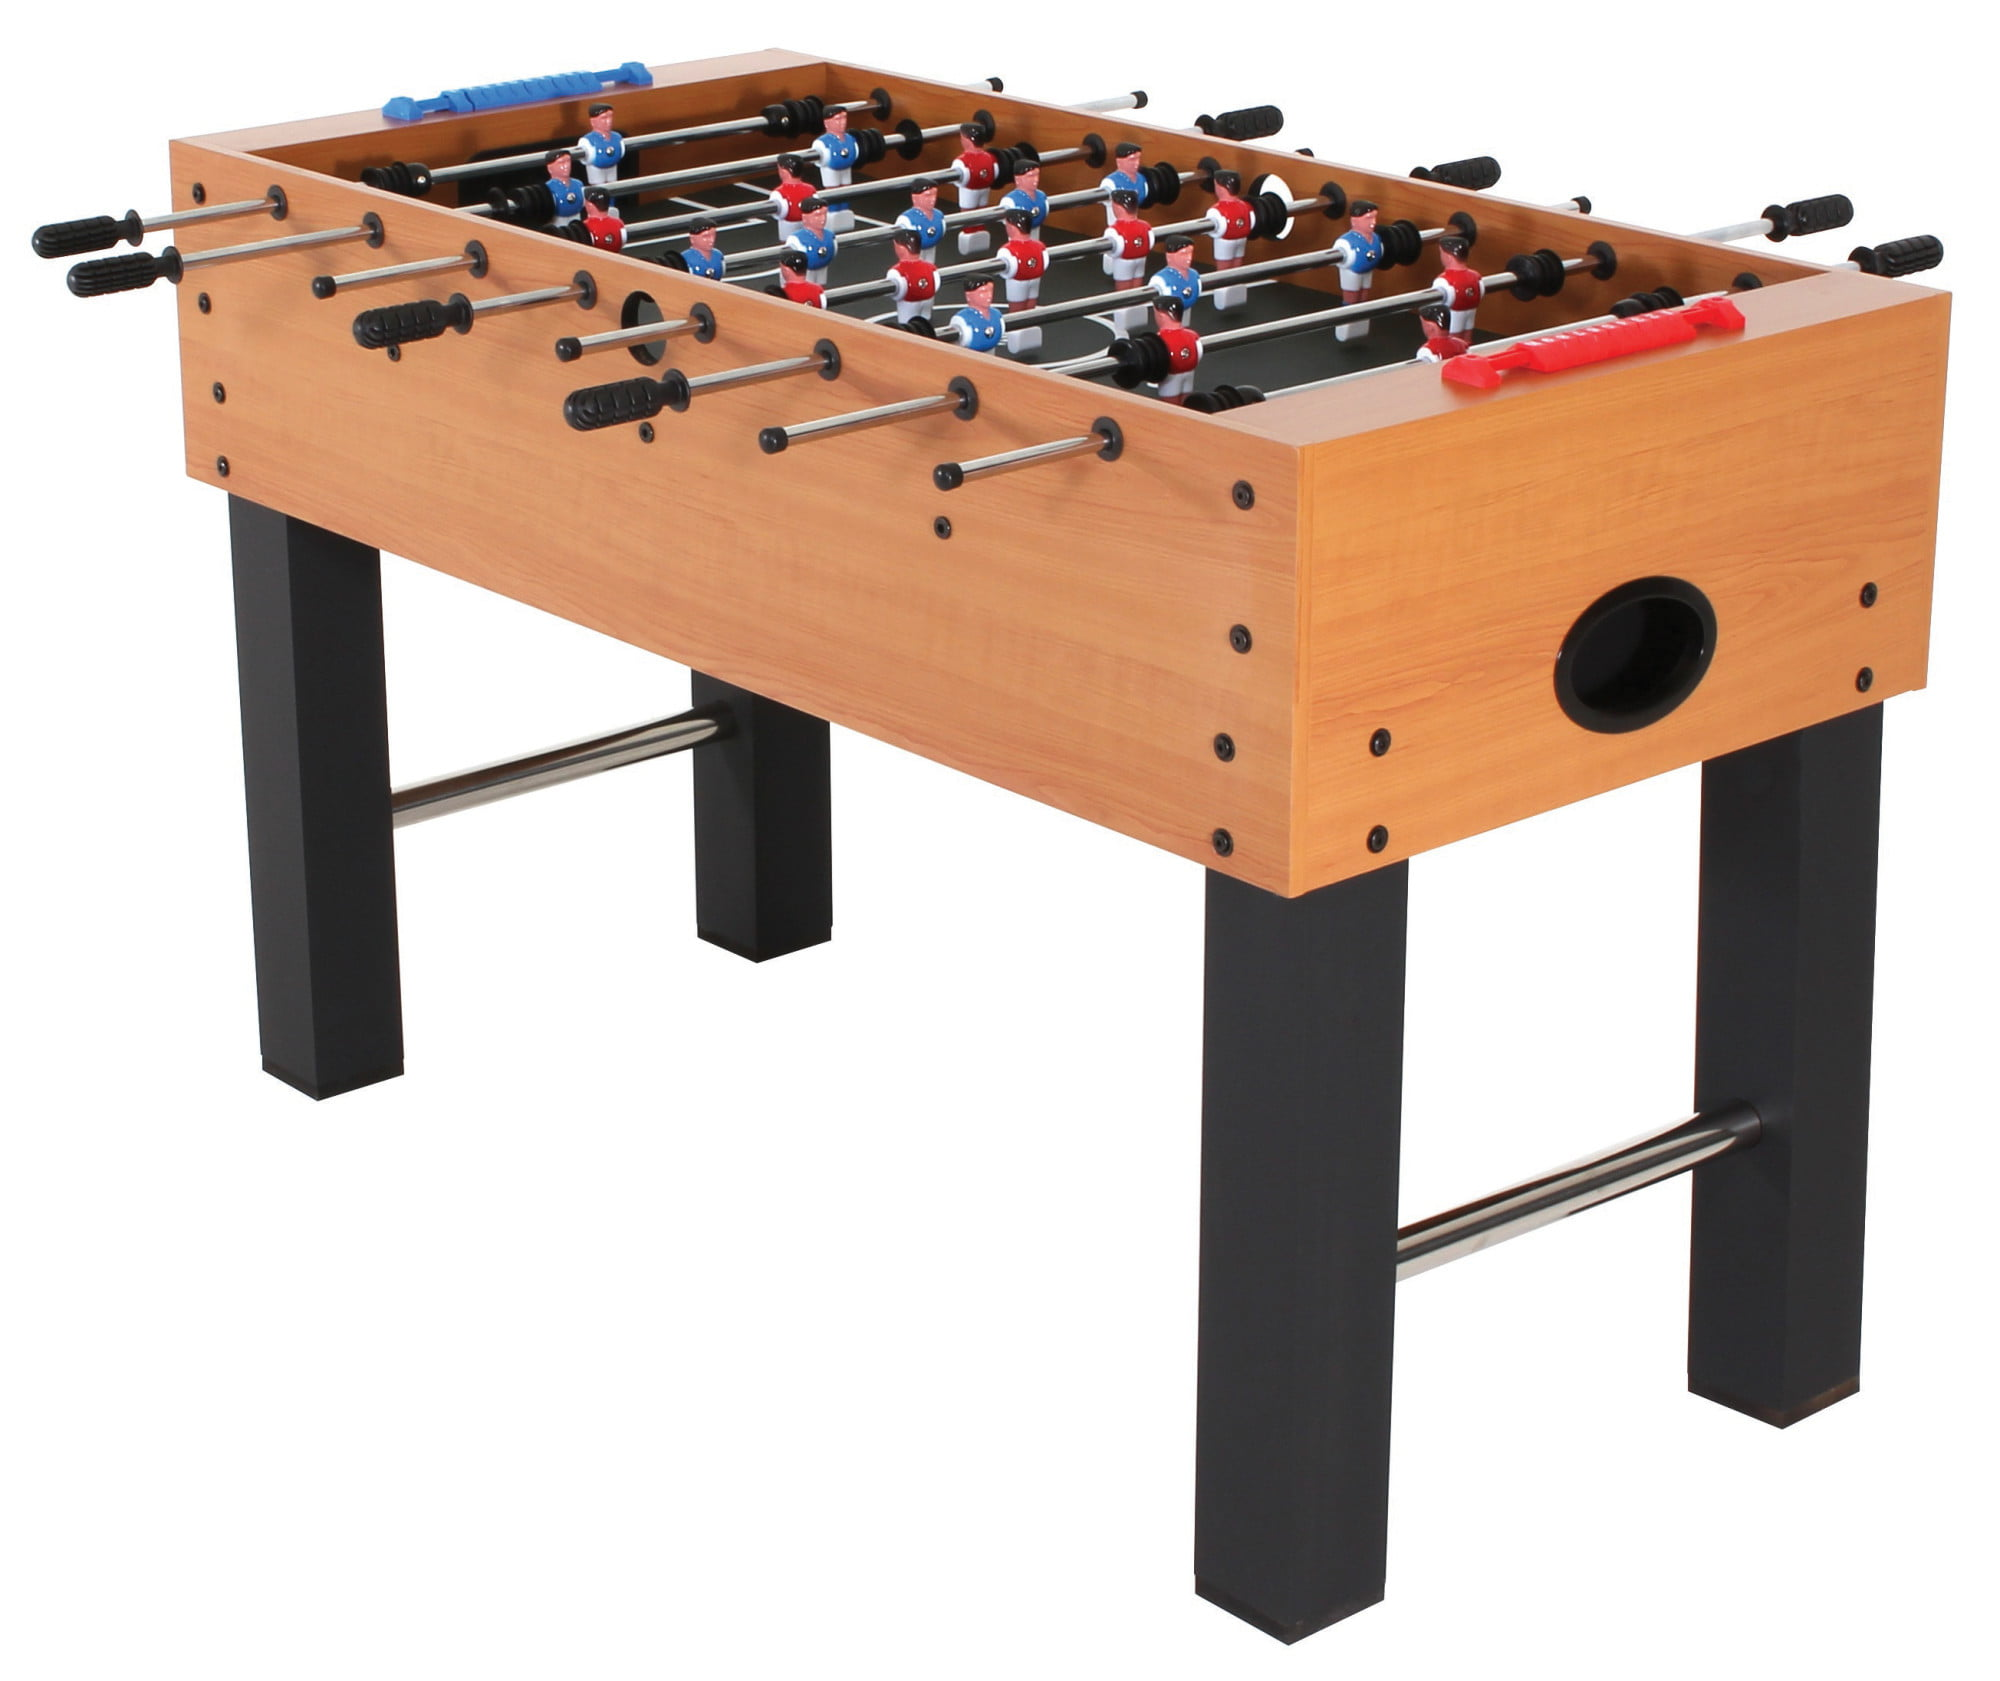 American Legend Charger 52� Foosball Table with Abacus-Style Scoring and Internal Ball Return System by American Legend